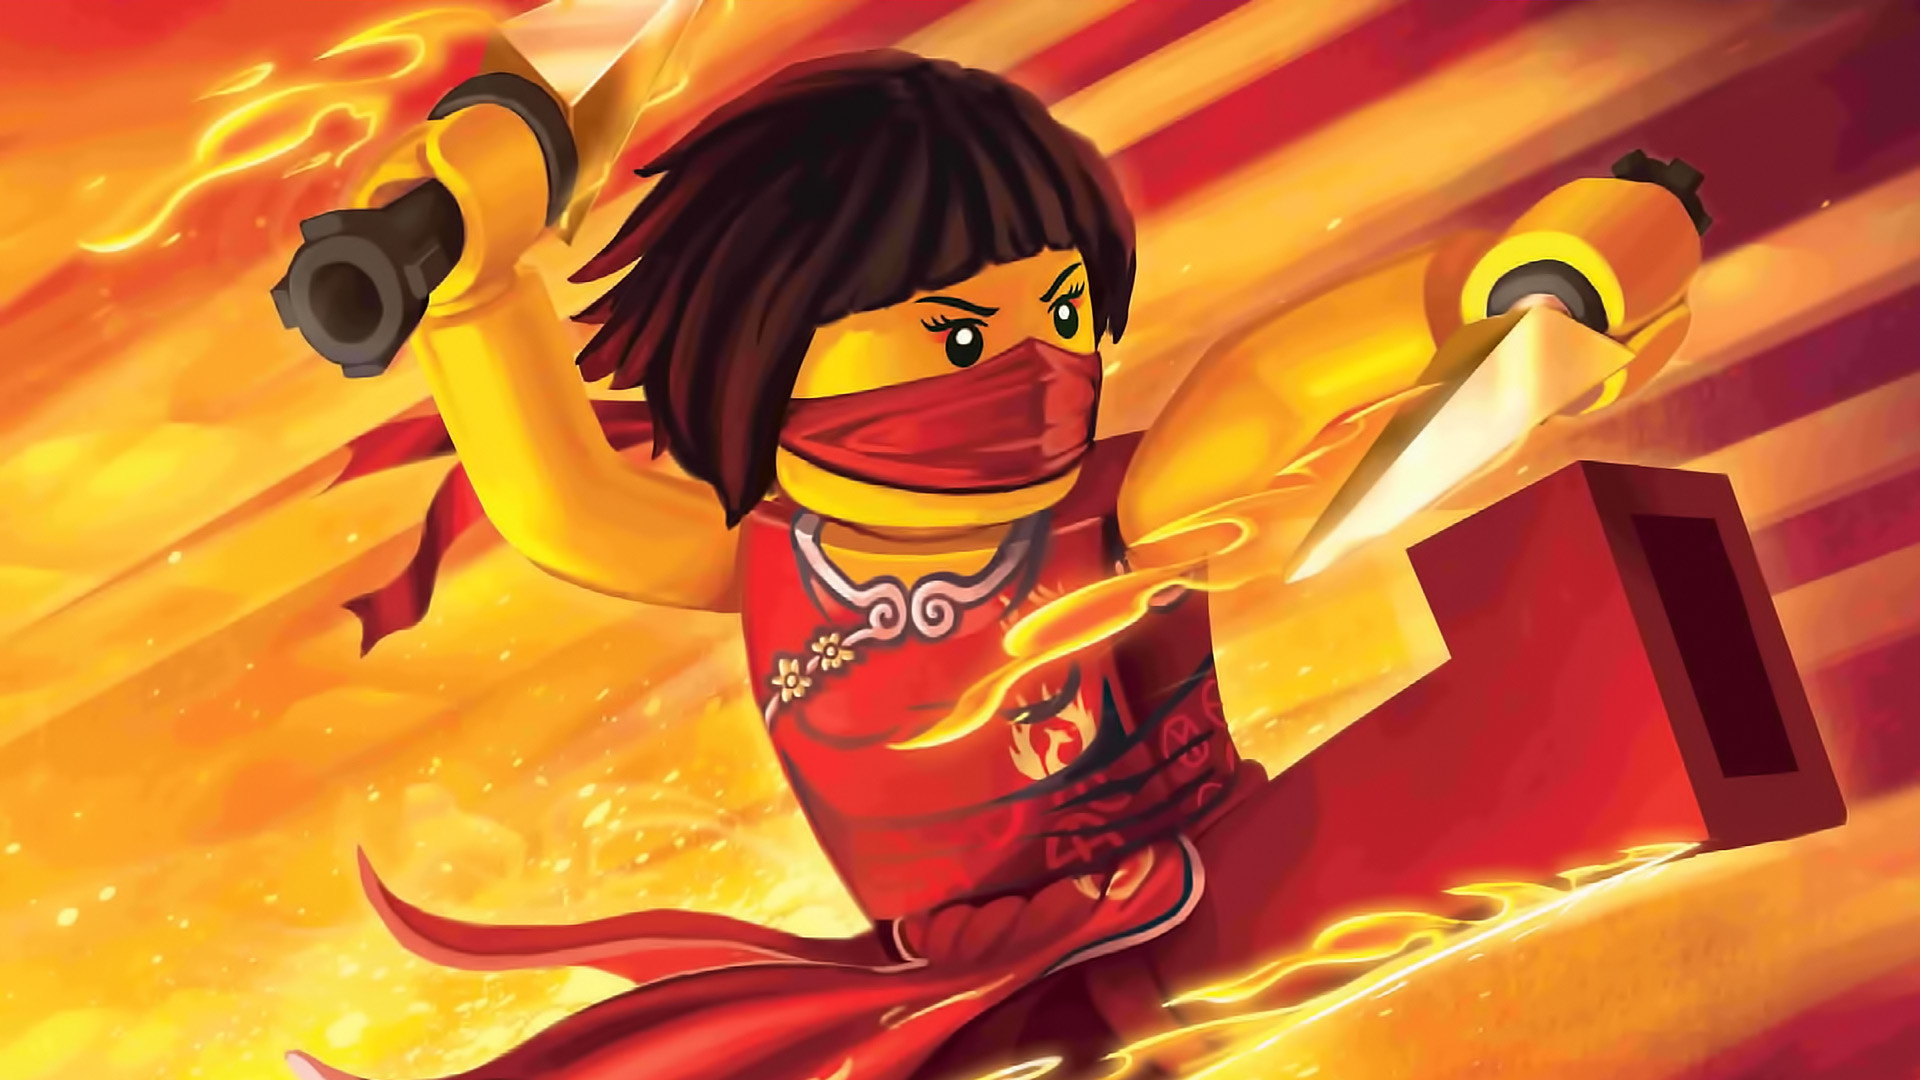 1920x1080 Cartoon - Lego Ninjago: Masters Of Spinjitzu Wallpaper